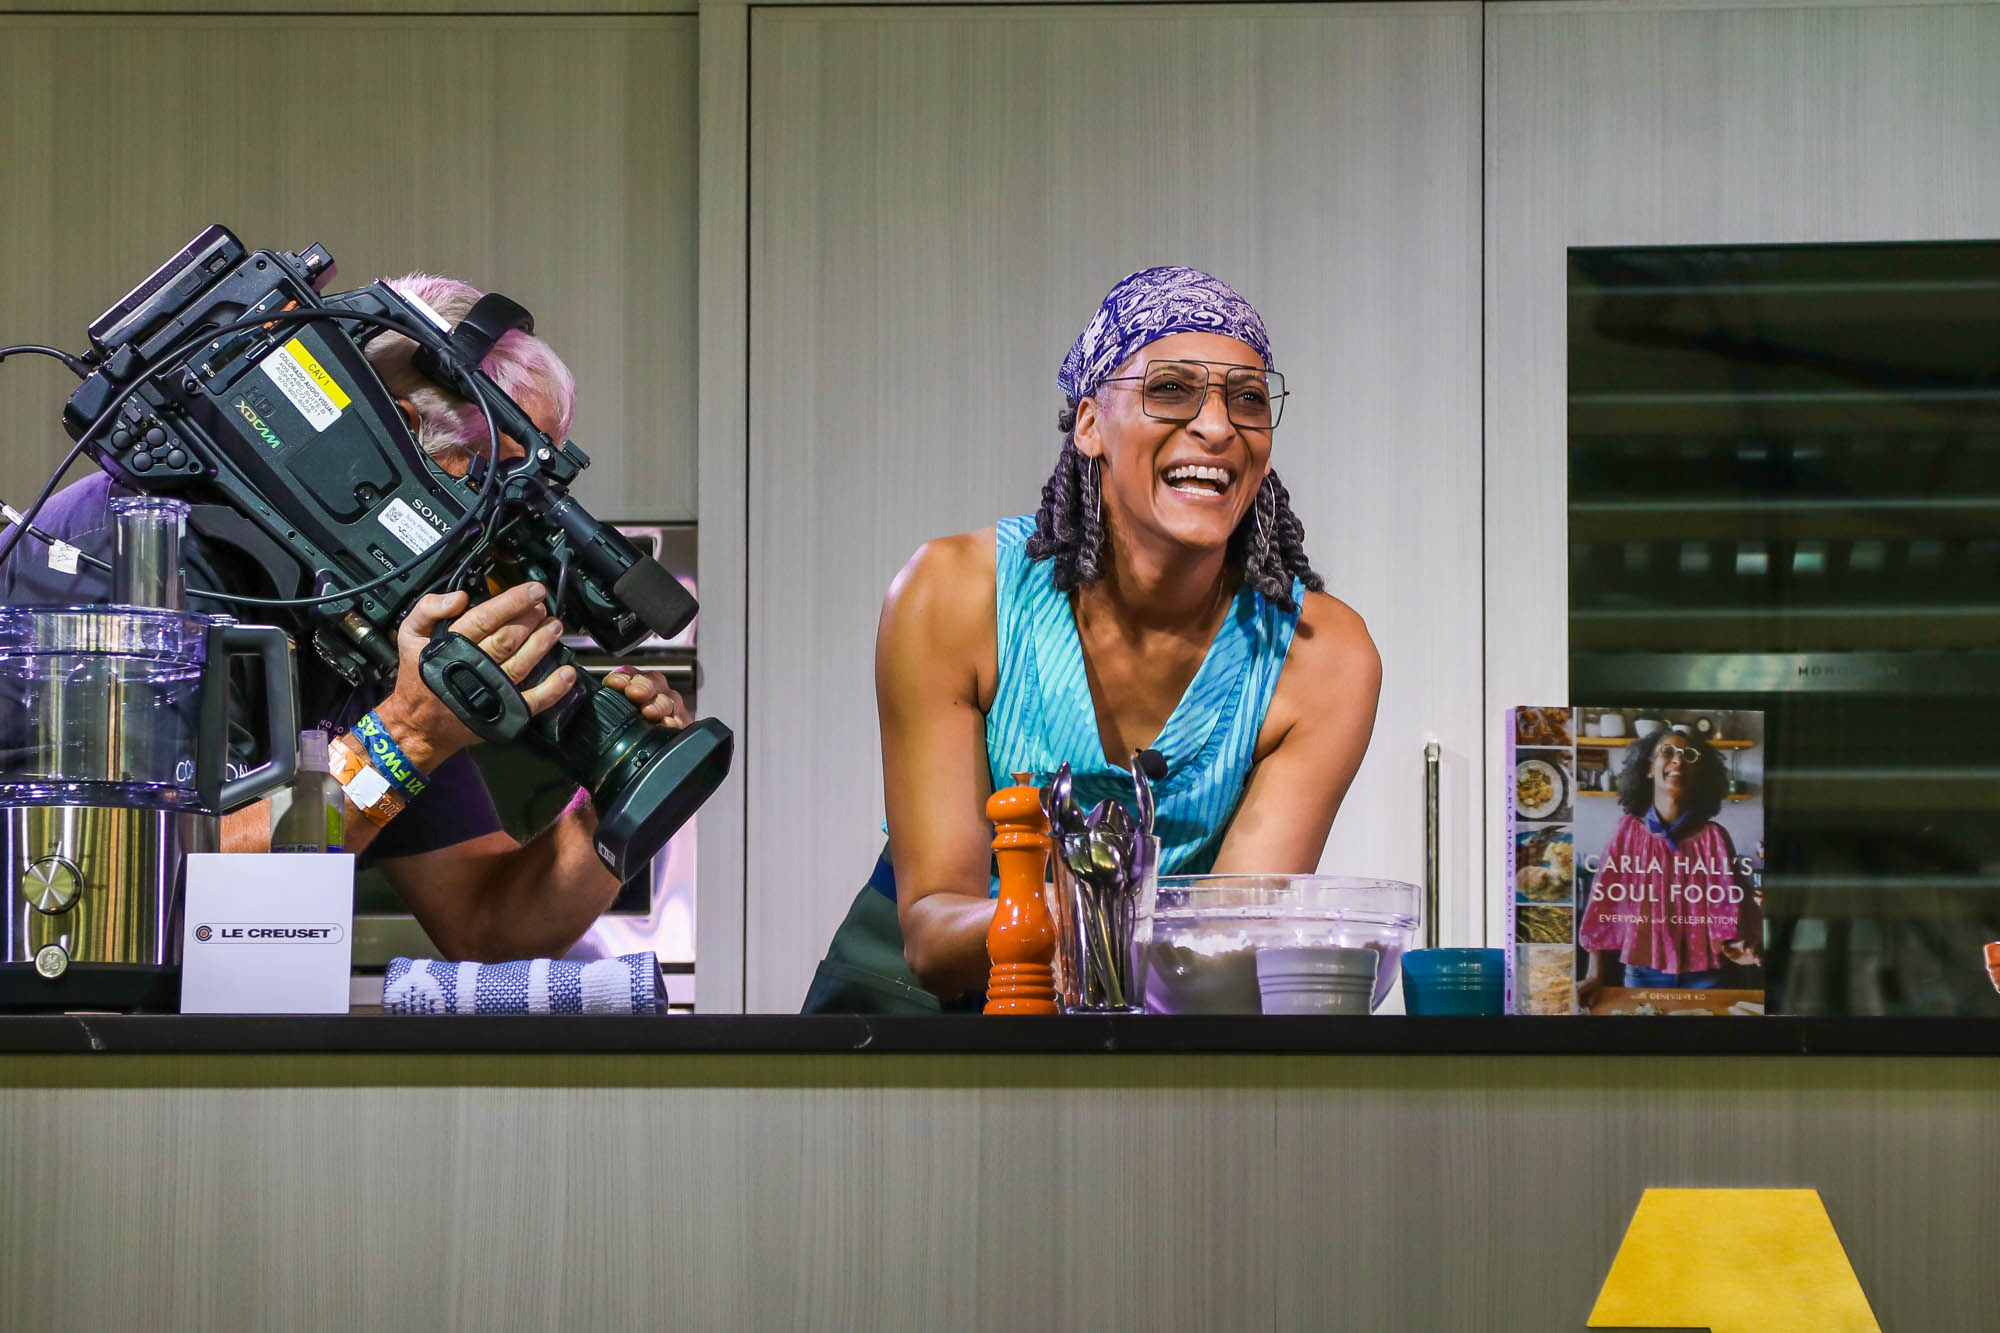 Carla Hall cooking at the Food & Wine Classic in Aspen, 2021